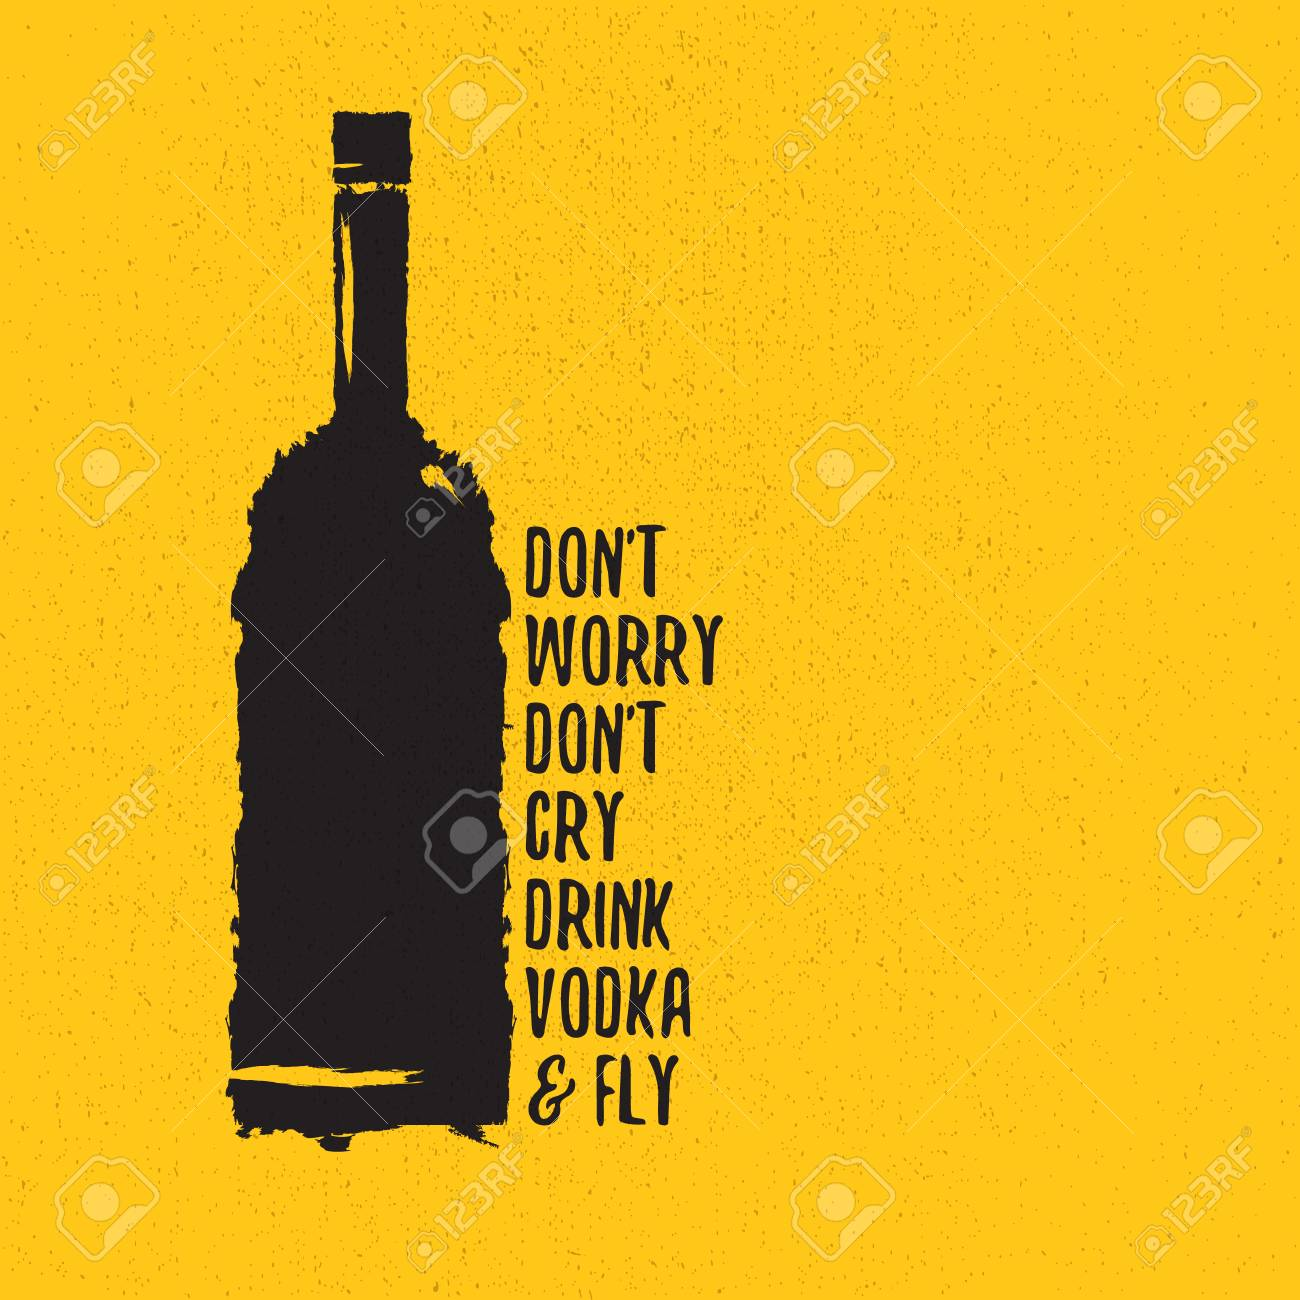 Worry Quotes | Dont Worry Dont Cry Drink Vodka And Fly Slogan Funny Quotes About